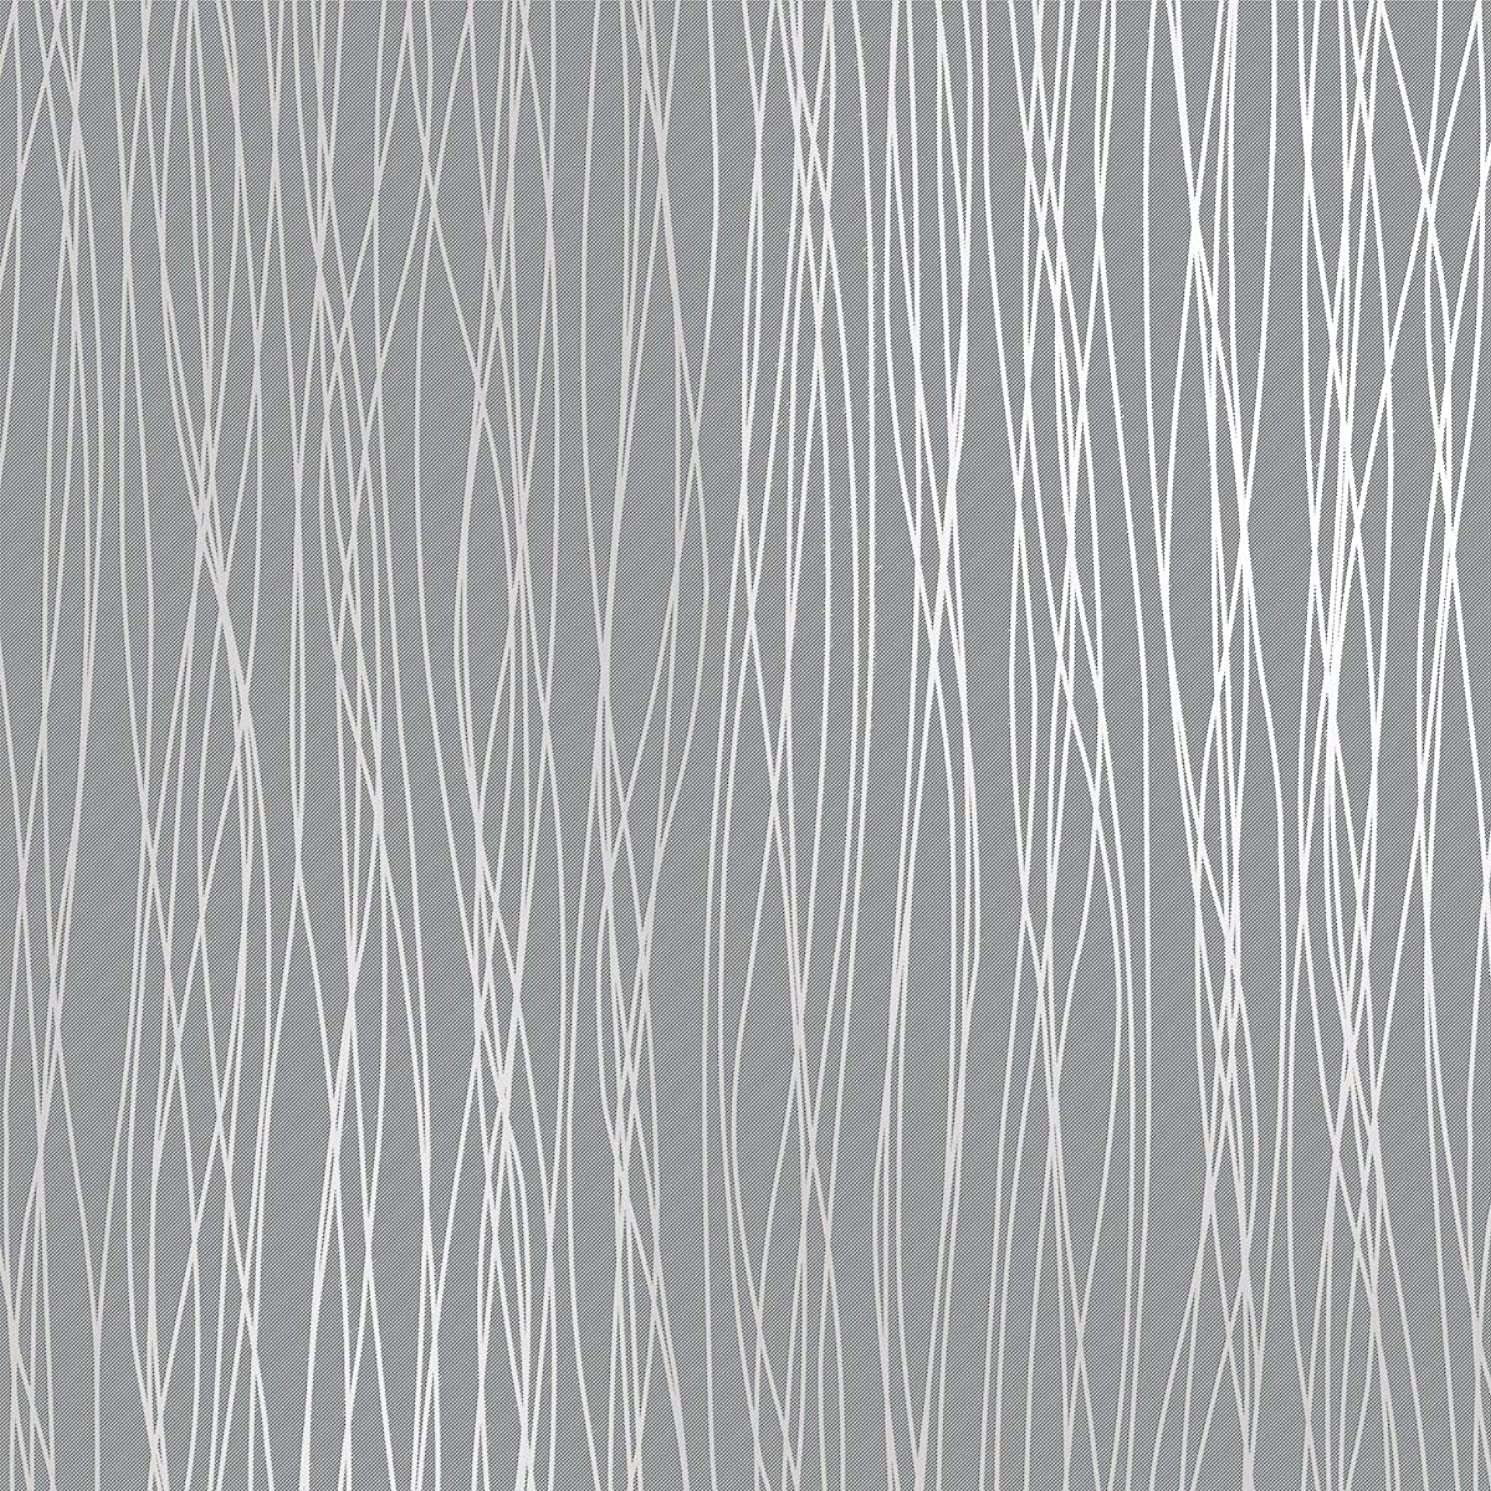 Mavee Non-Woven 3D Wallpaper, 20.8In x 32.8Ft Modern Print Embossed Stripe Fashion Wallpapers for Livingroom, Bedroom, Kitchen and Bathroom, Silver Grey